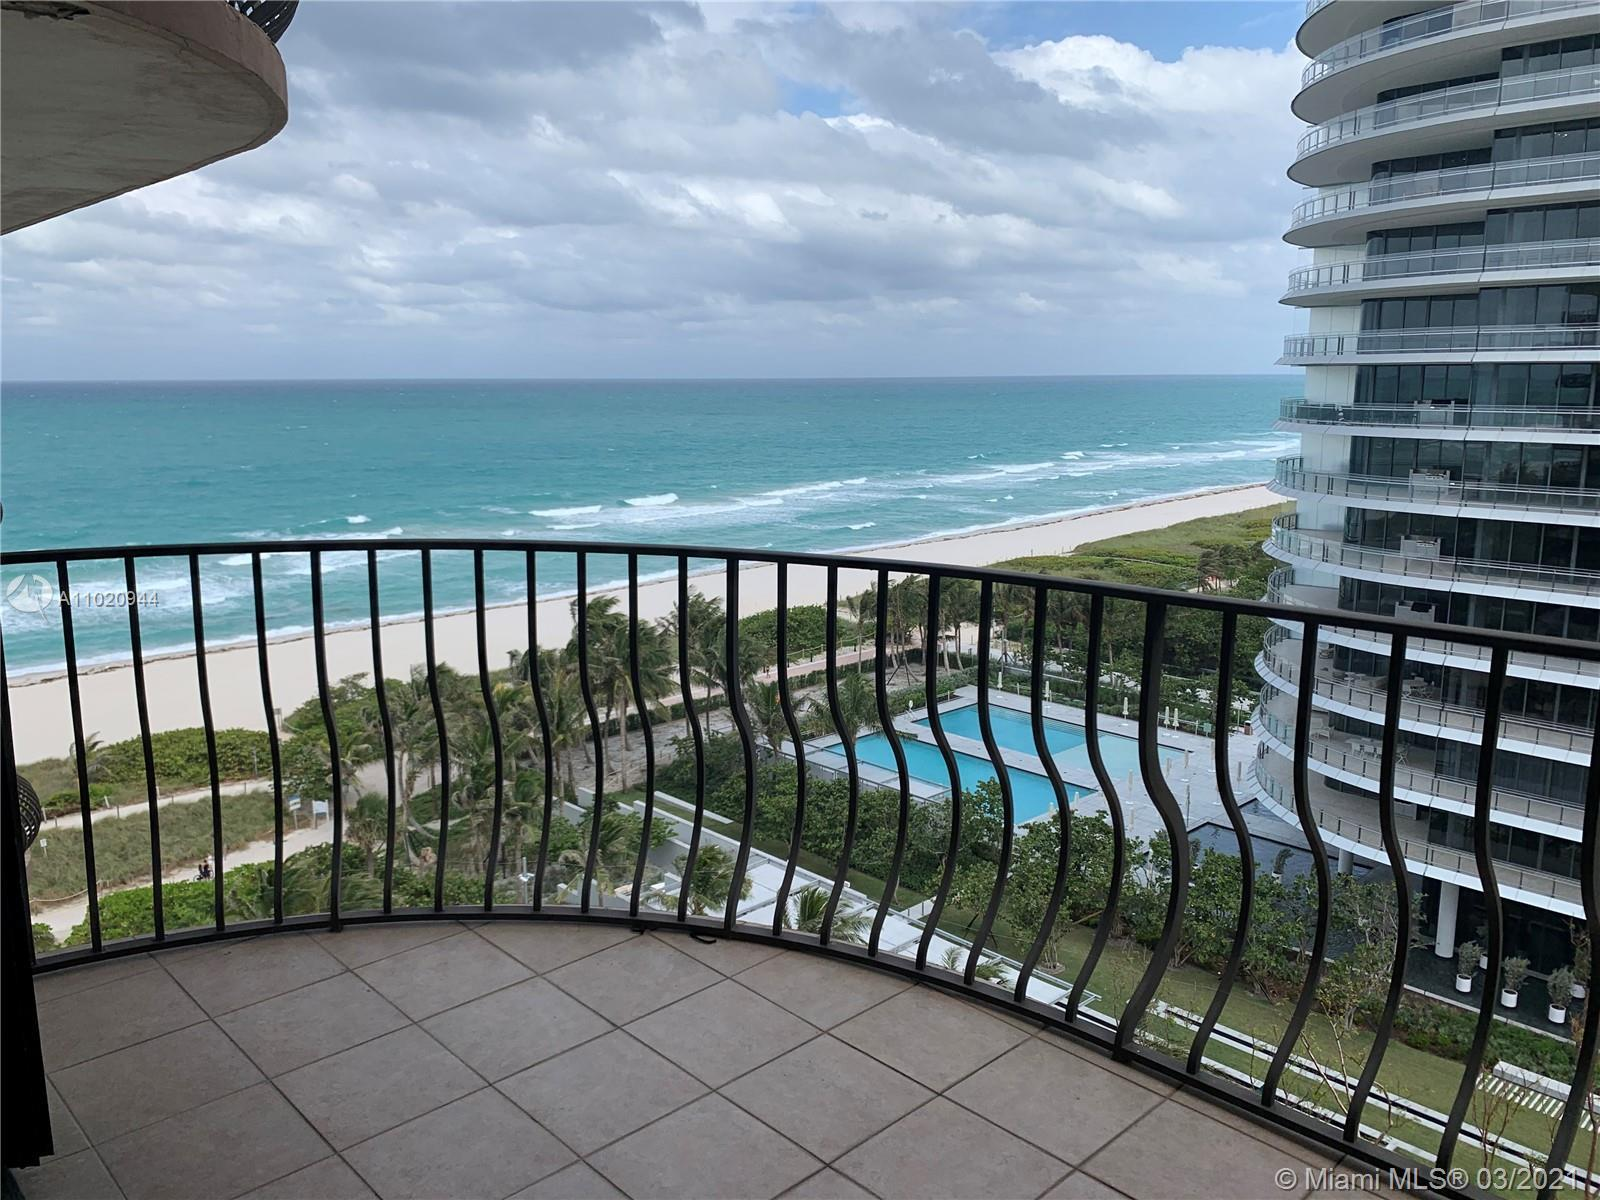 Luxury building on the ocean. Ocean View! Spacious open space layout apartment with beautiful views.